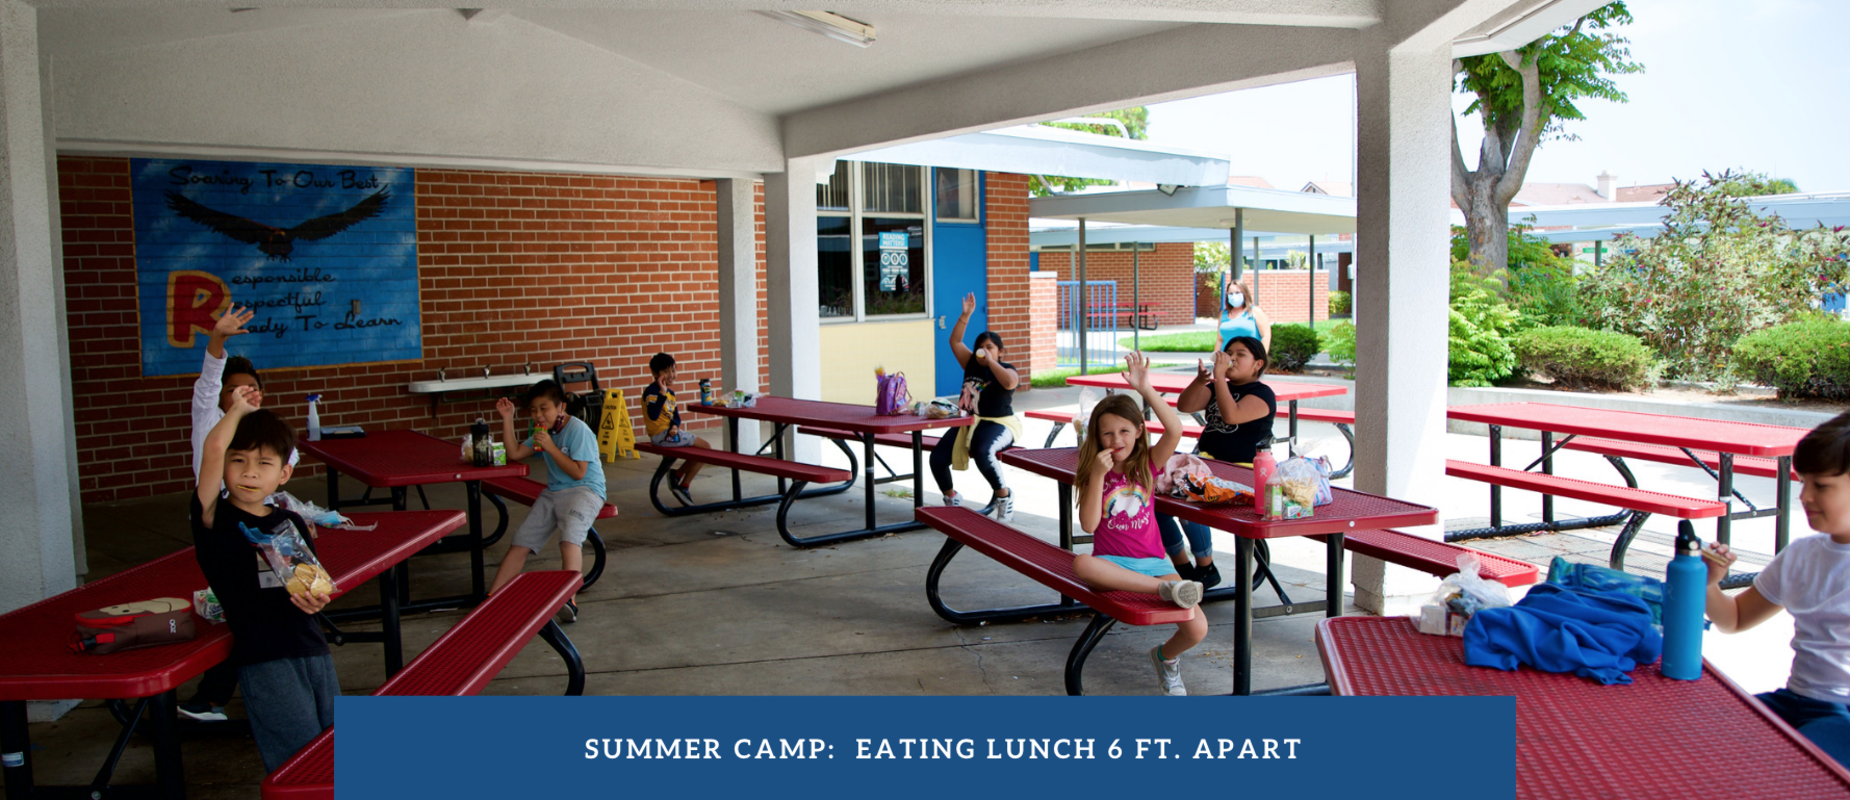 Observing social distancing while in eating lunch at summer camp